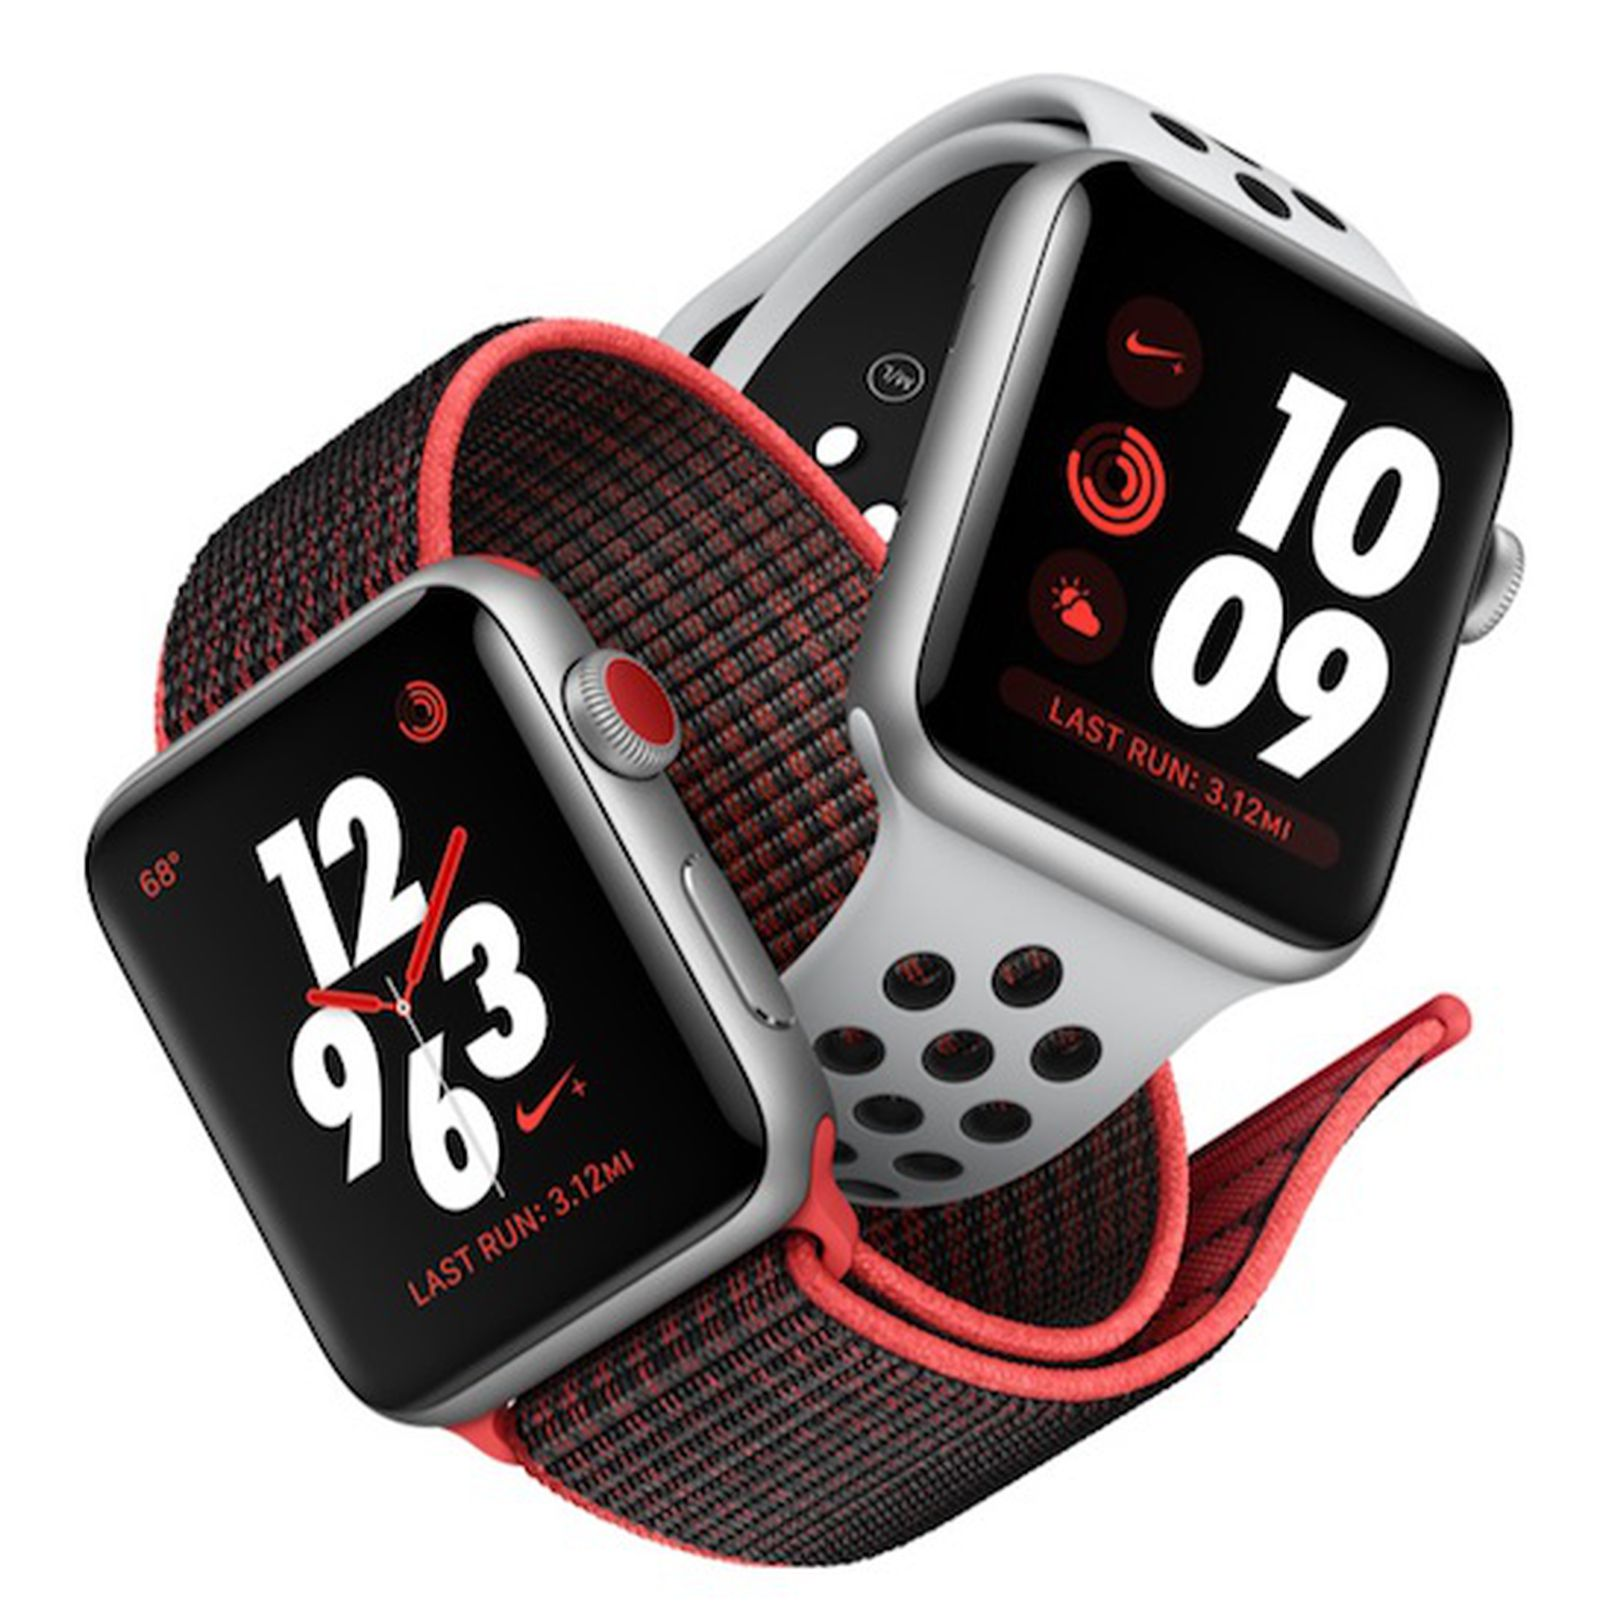 Tendencia Dos grados halcón  Apple Watch Series 3's Nike+ Models Have Slightly Later October 5 Launch  Date - MacRumors